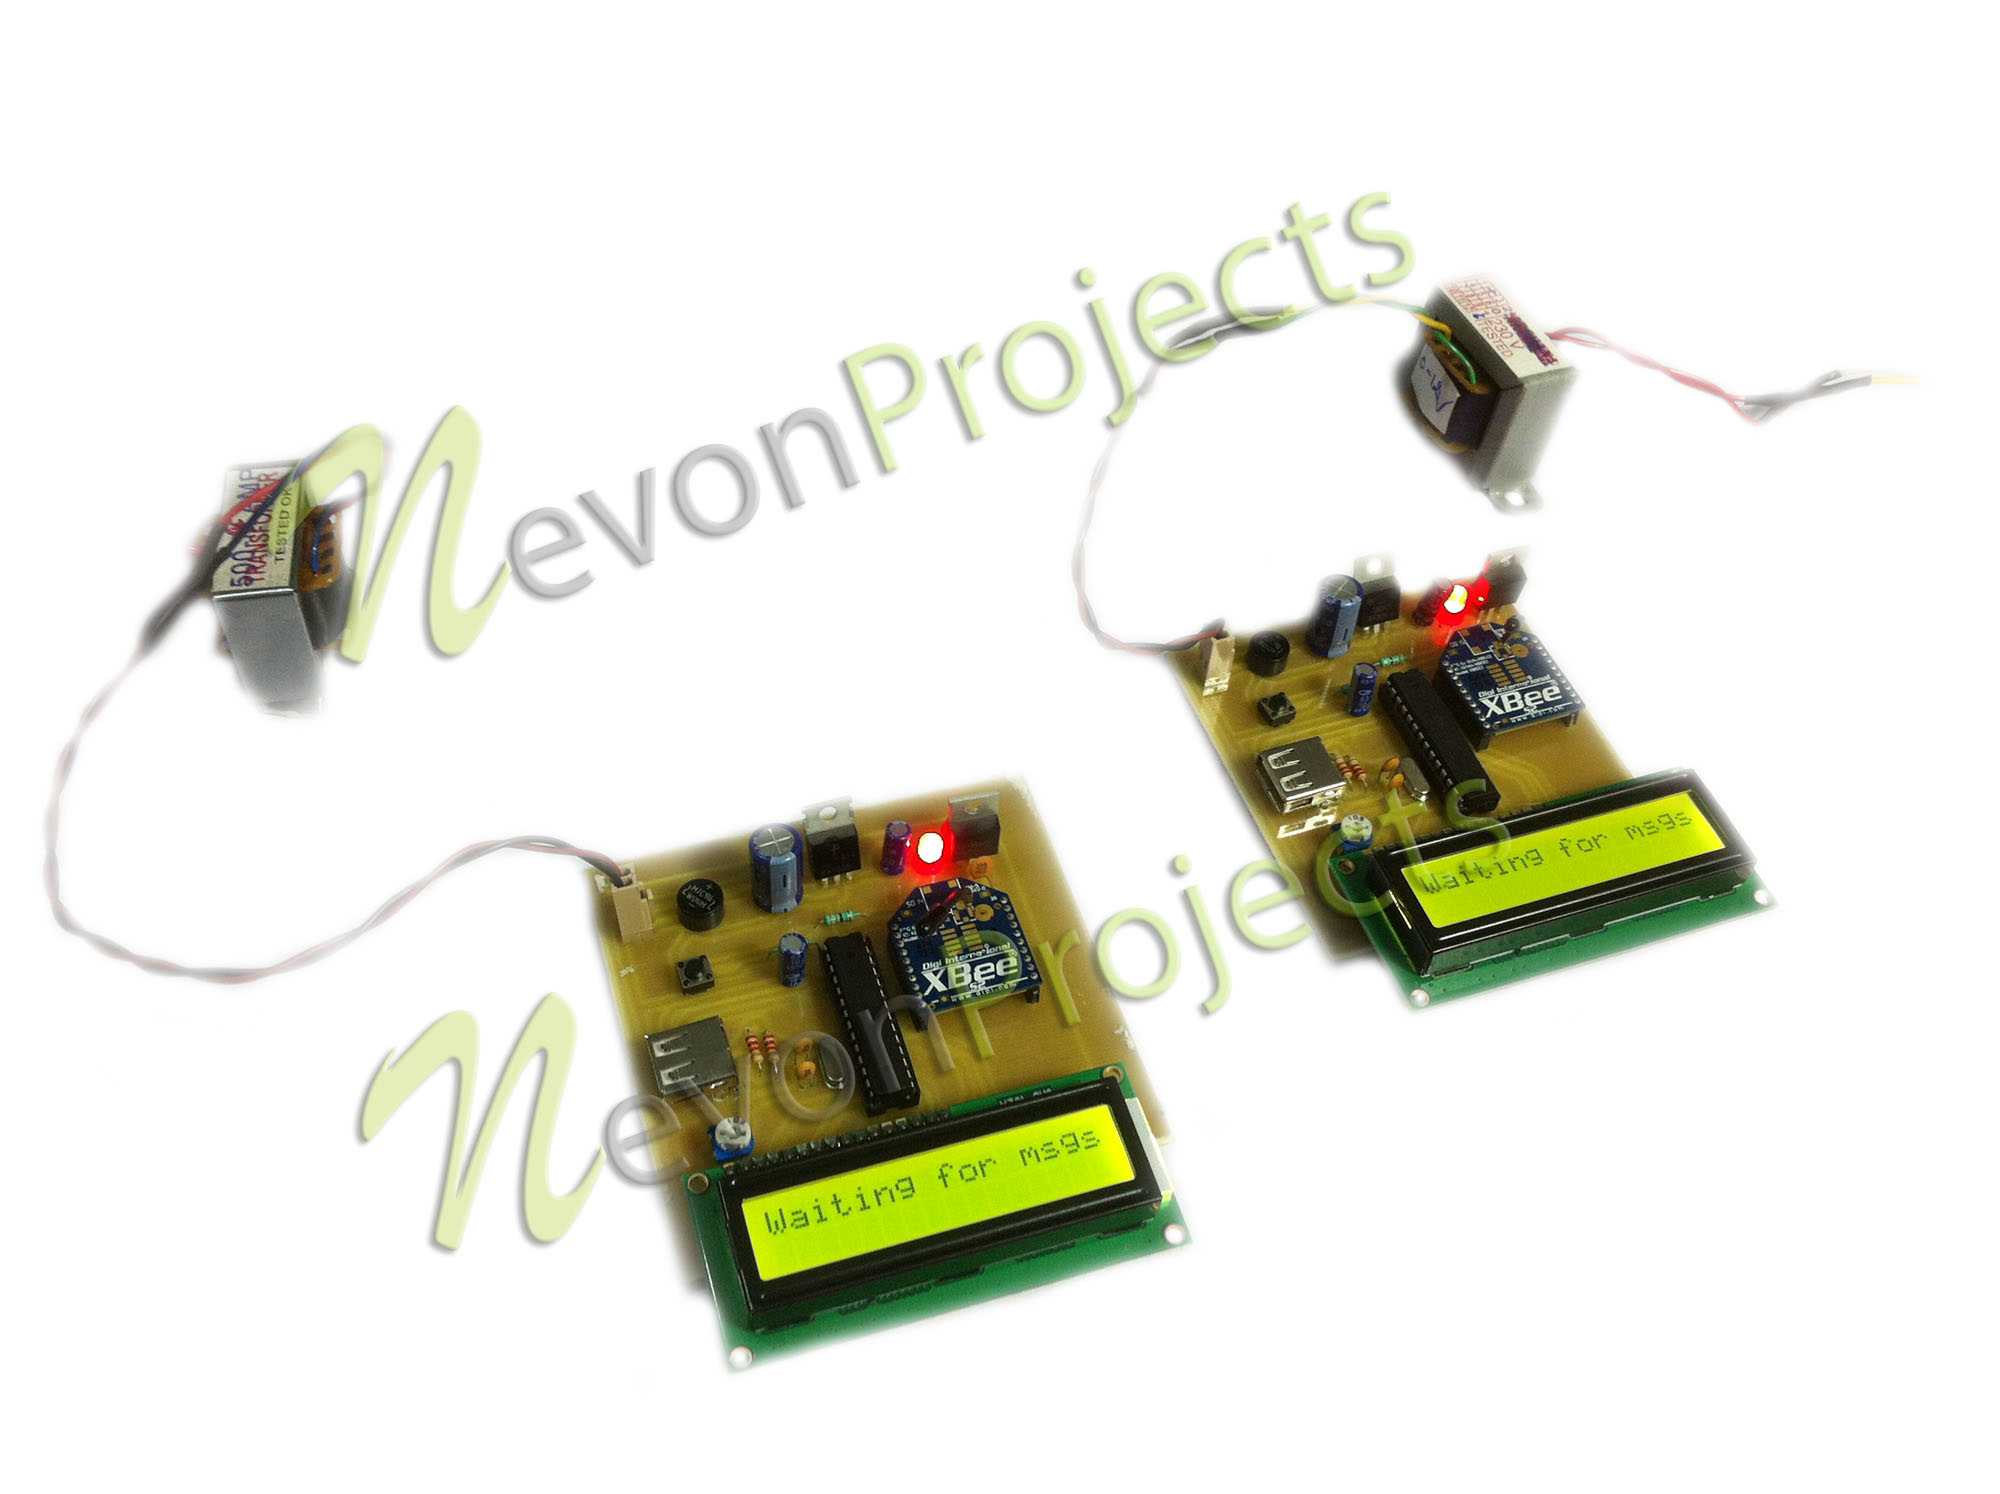 Zigbee based secure wireless communication using aes nevonprojects zigbee communication using aes project ccuart Images